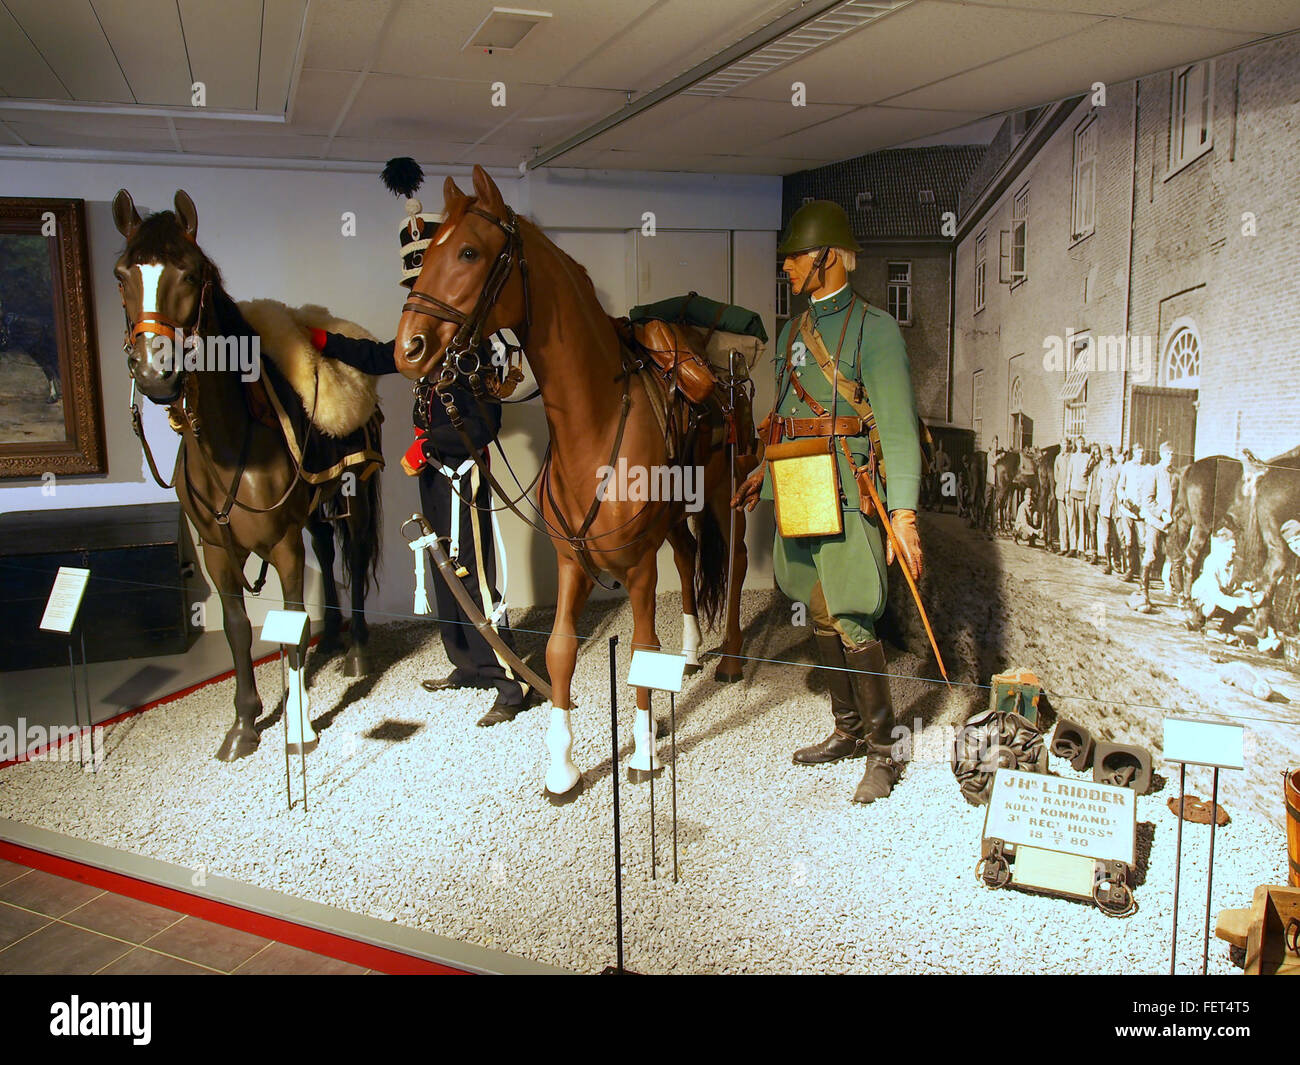 Dutch Cavalry Museum, Bernhardkazerne pic1 Stock Photo